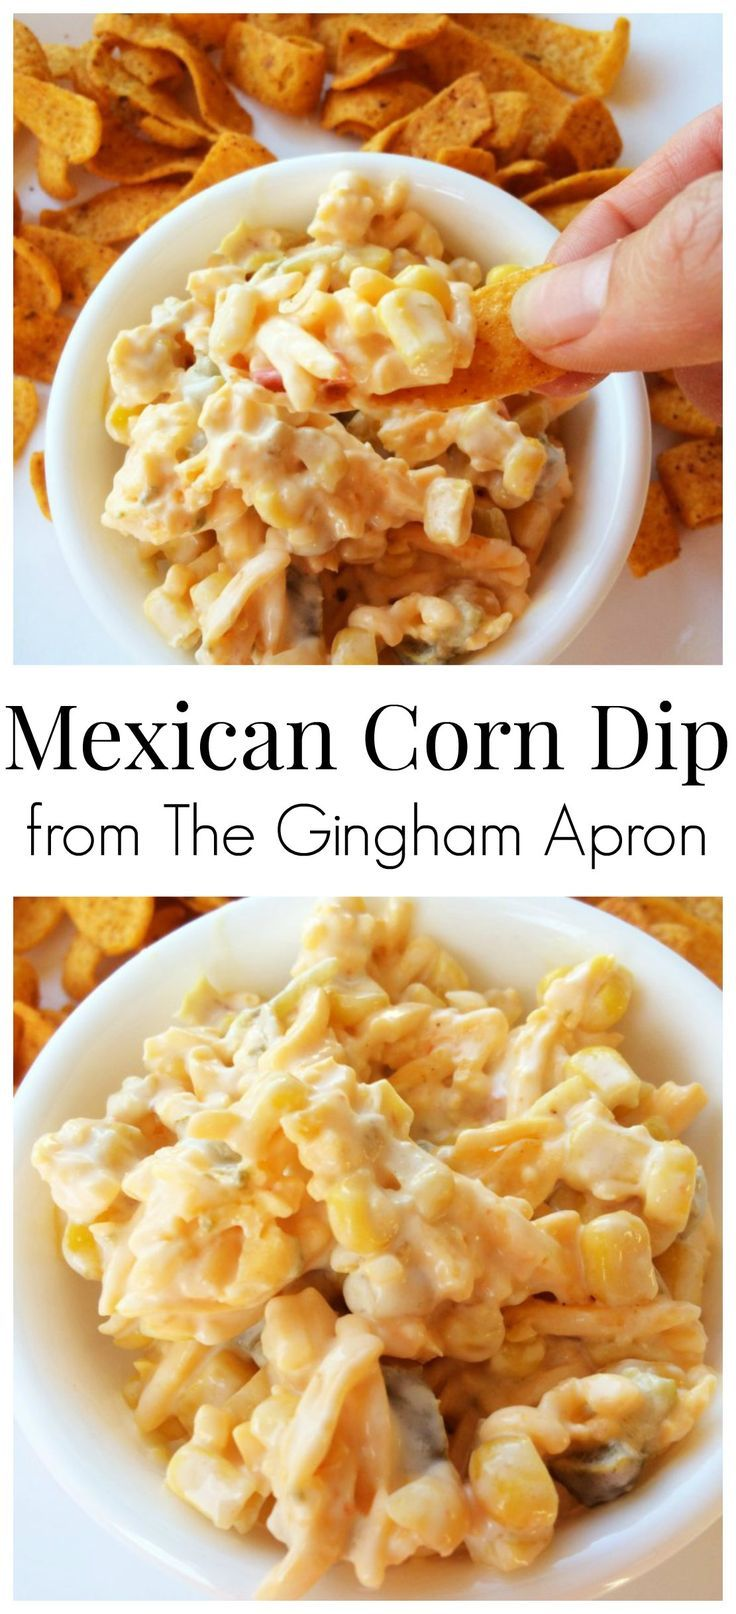 Mexican Corn Dip- with just a few ingredients, this delicious dip is quick and easy!